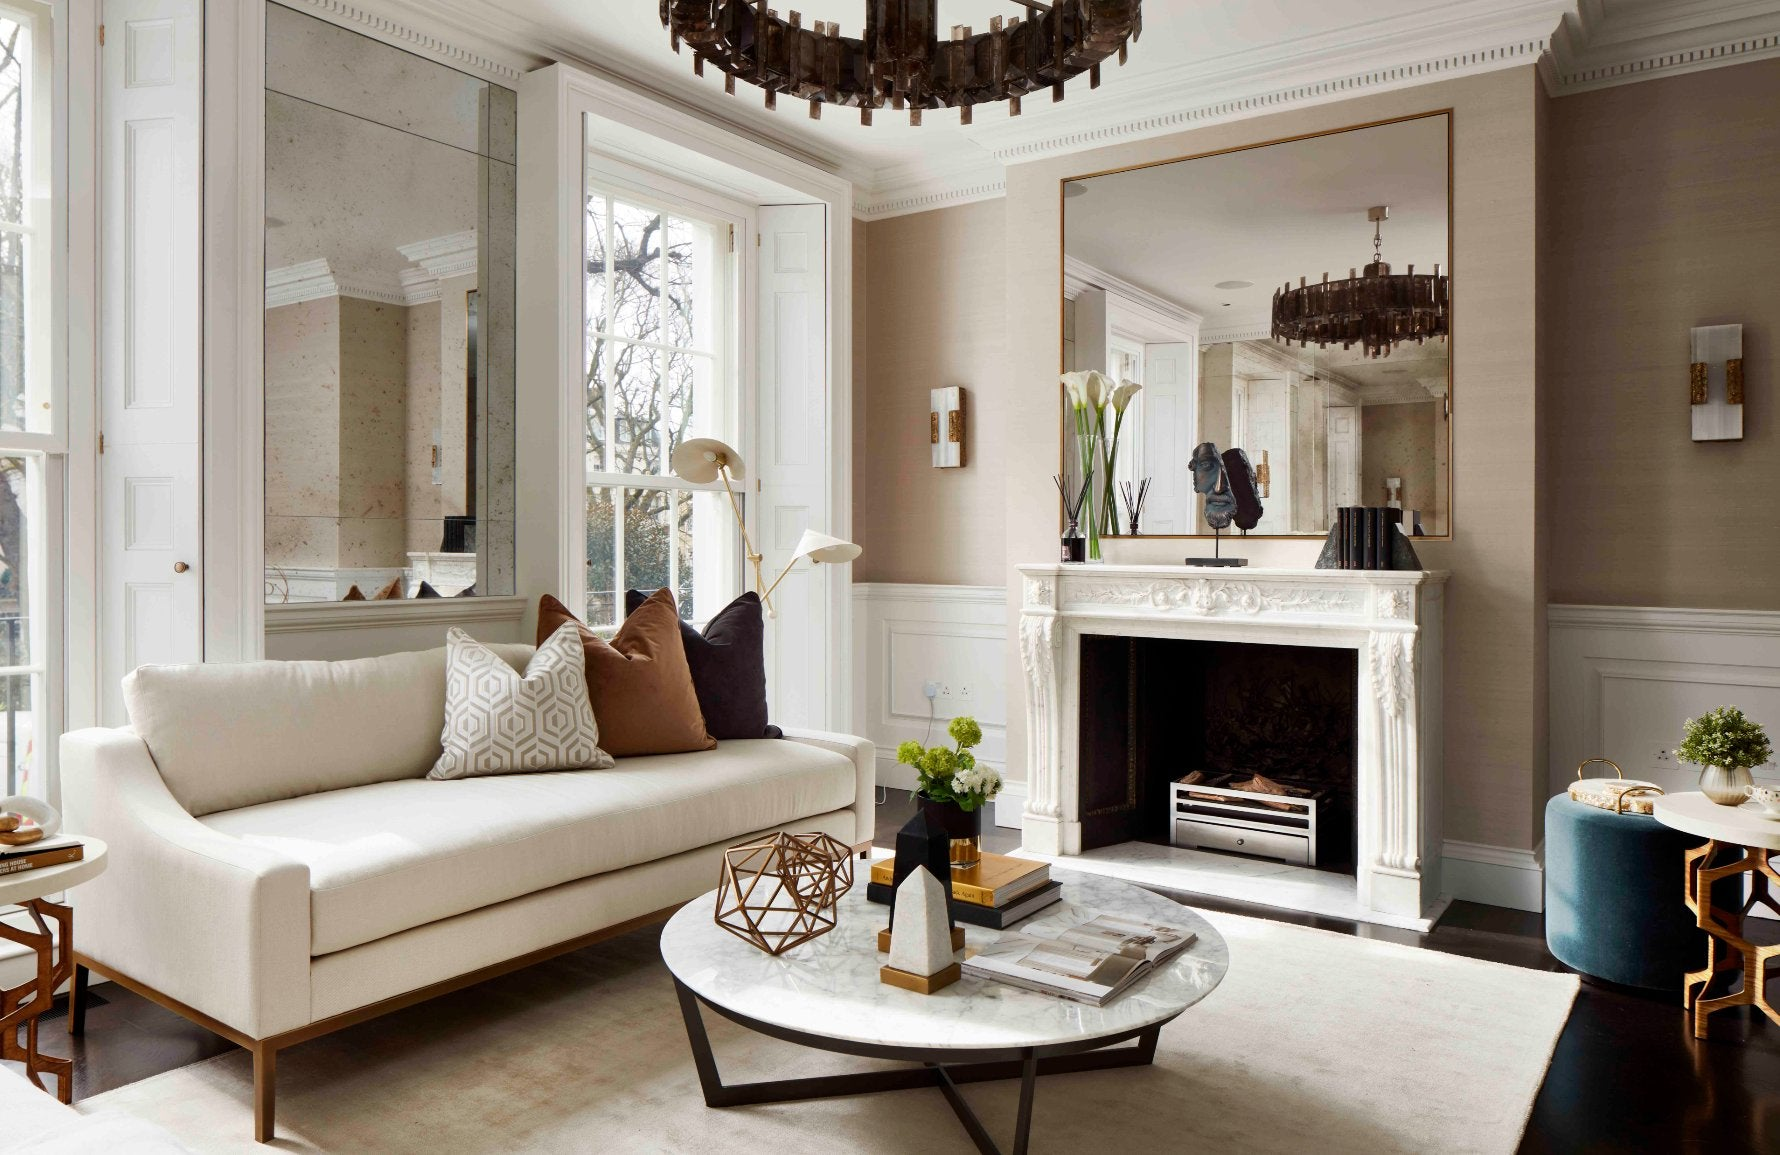 Interior Design - Top 10 Modern Interior Designers - 1508 London - LuxDeco Style Guide